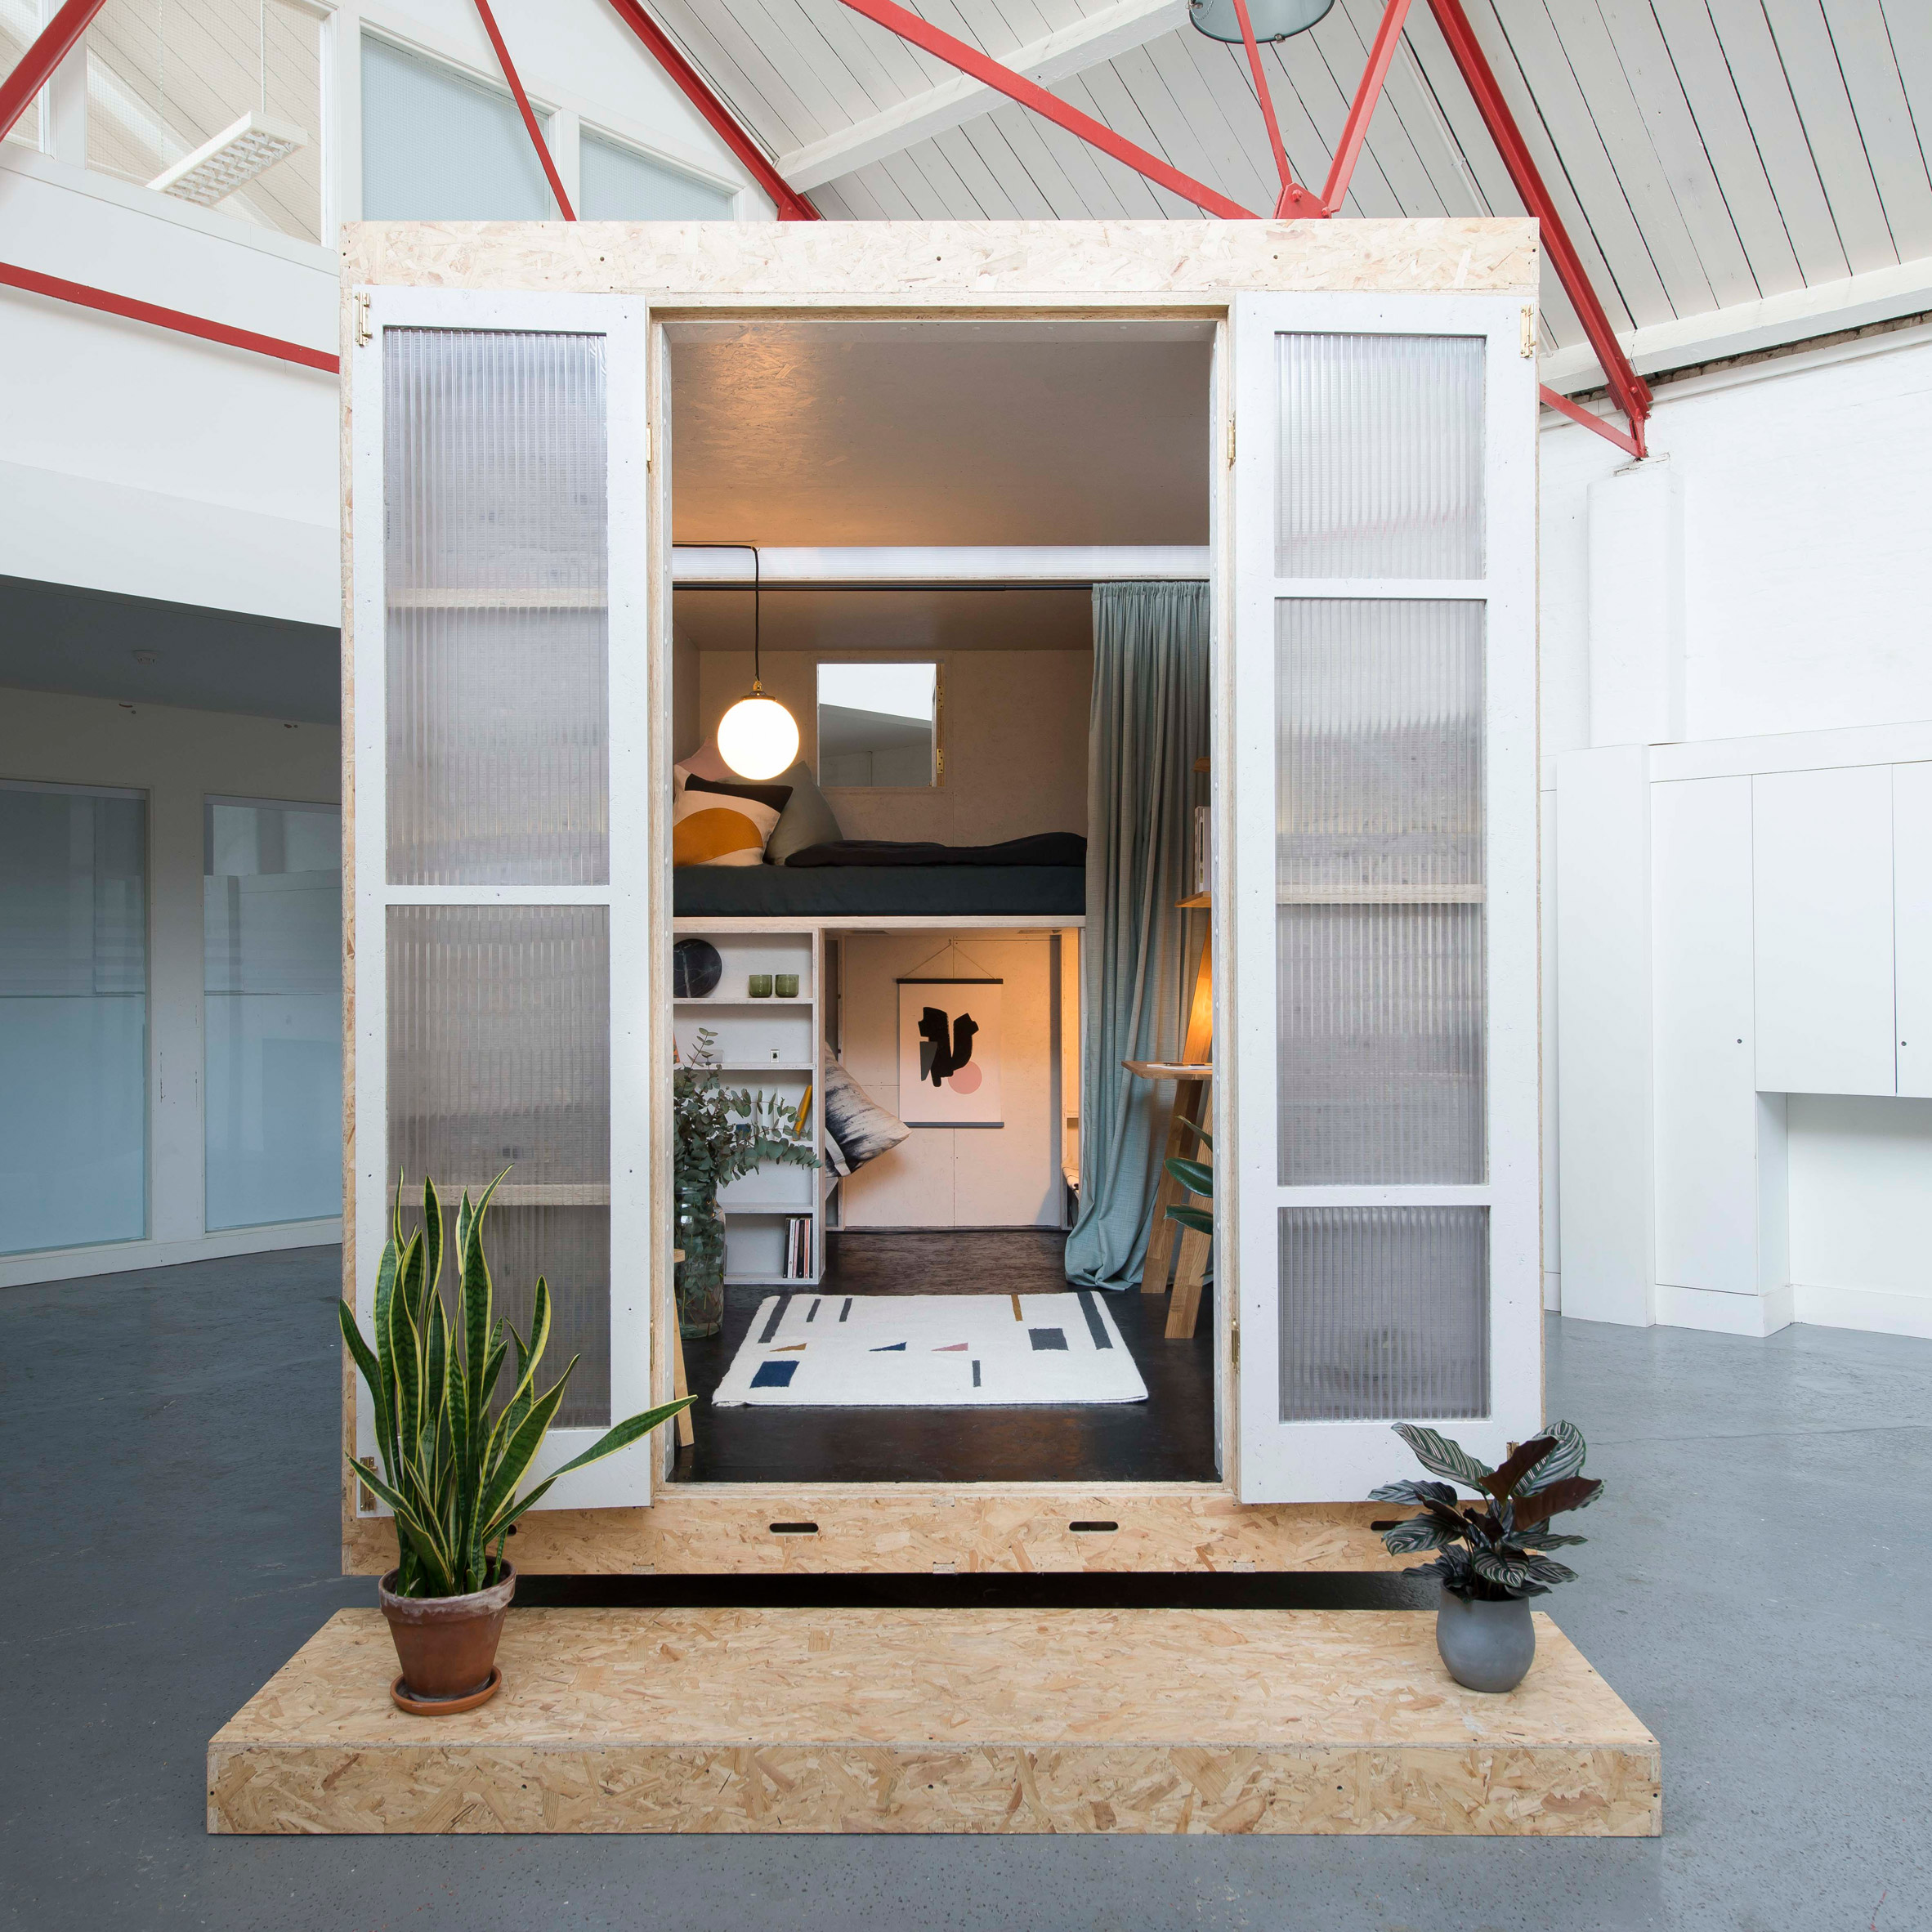 Micro homes design and architecture | Dezeen